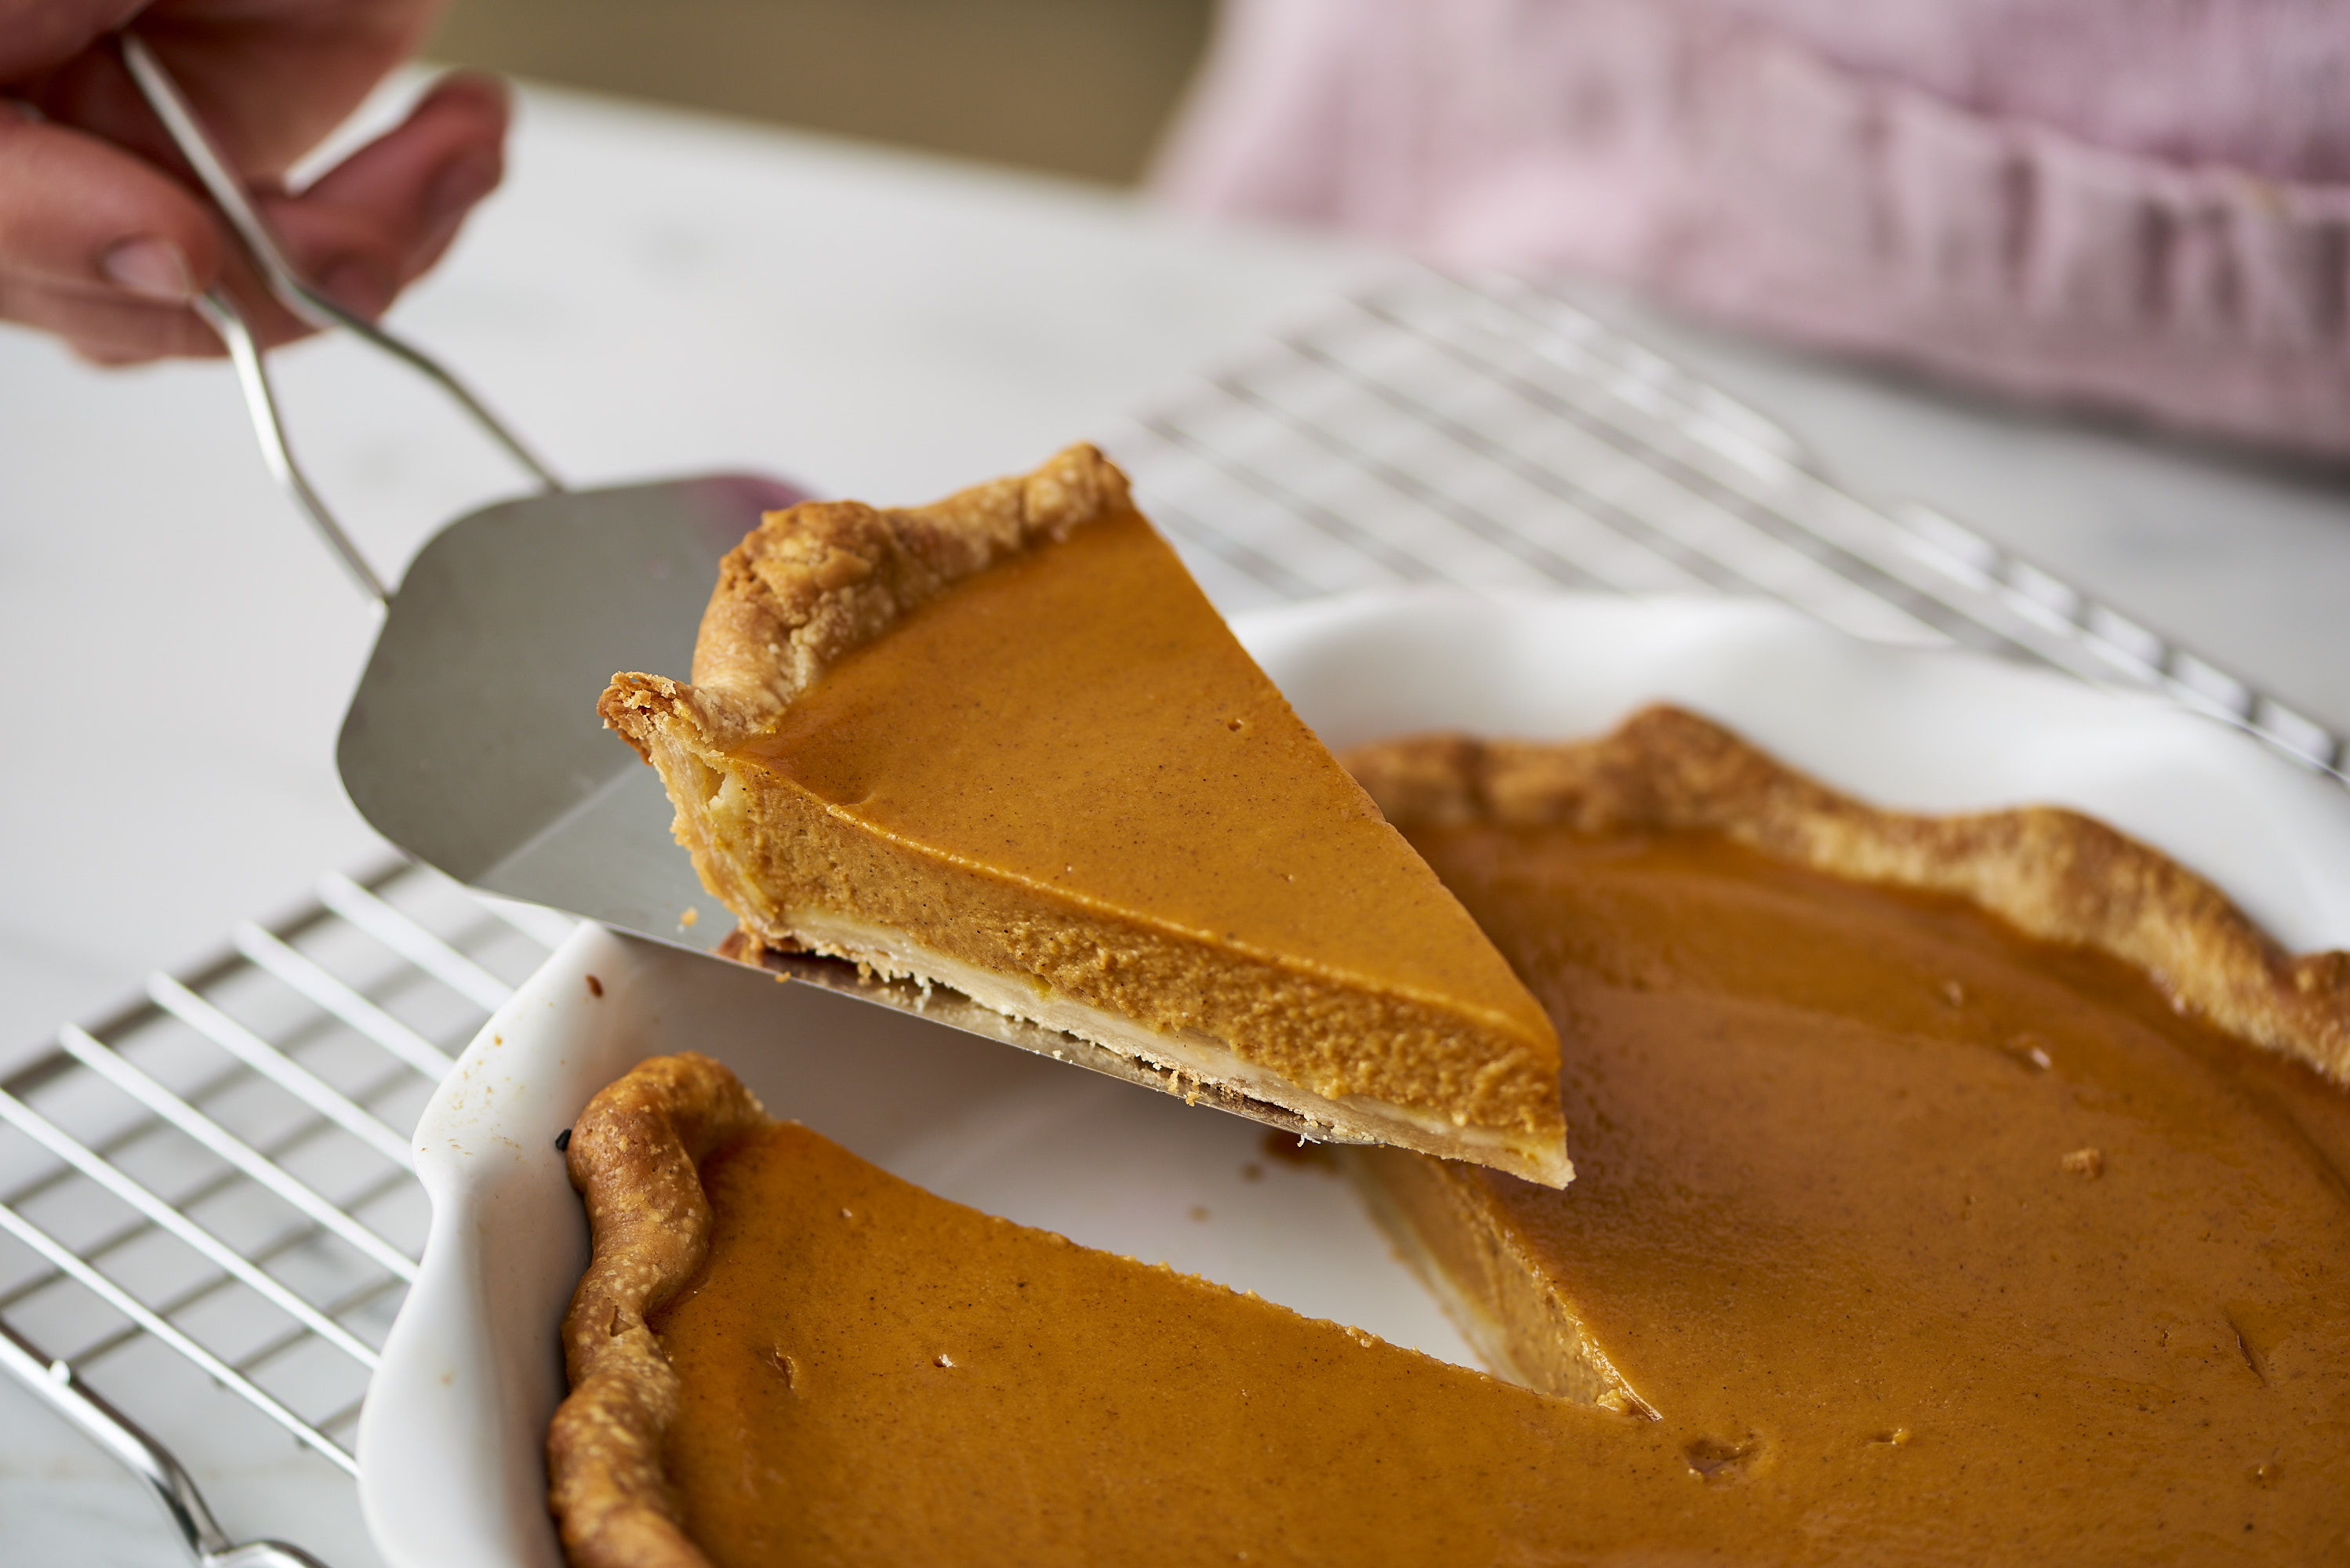 How To Make Homemade Pumpkin Pie From Scratch Kitchn